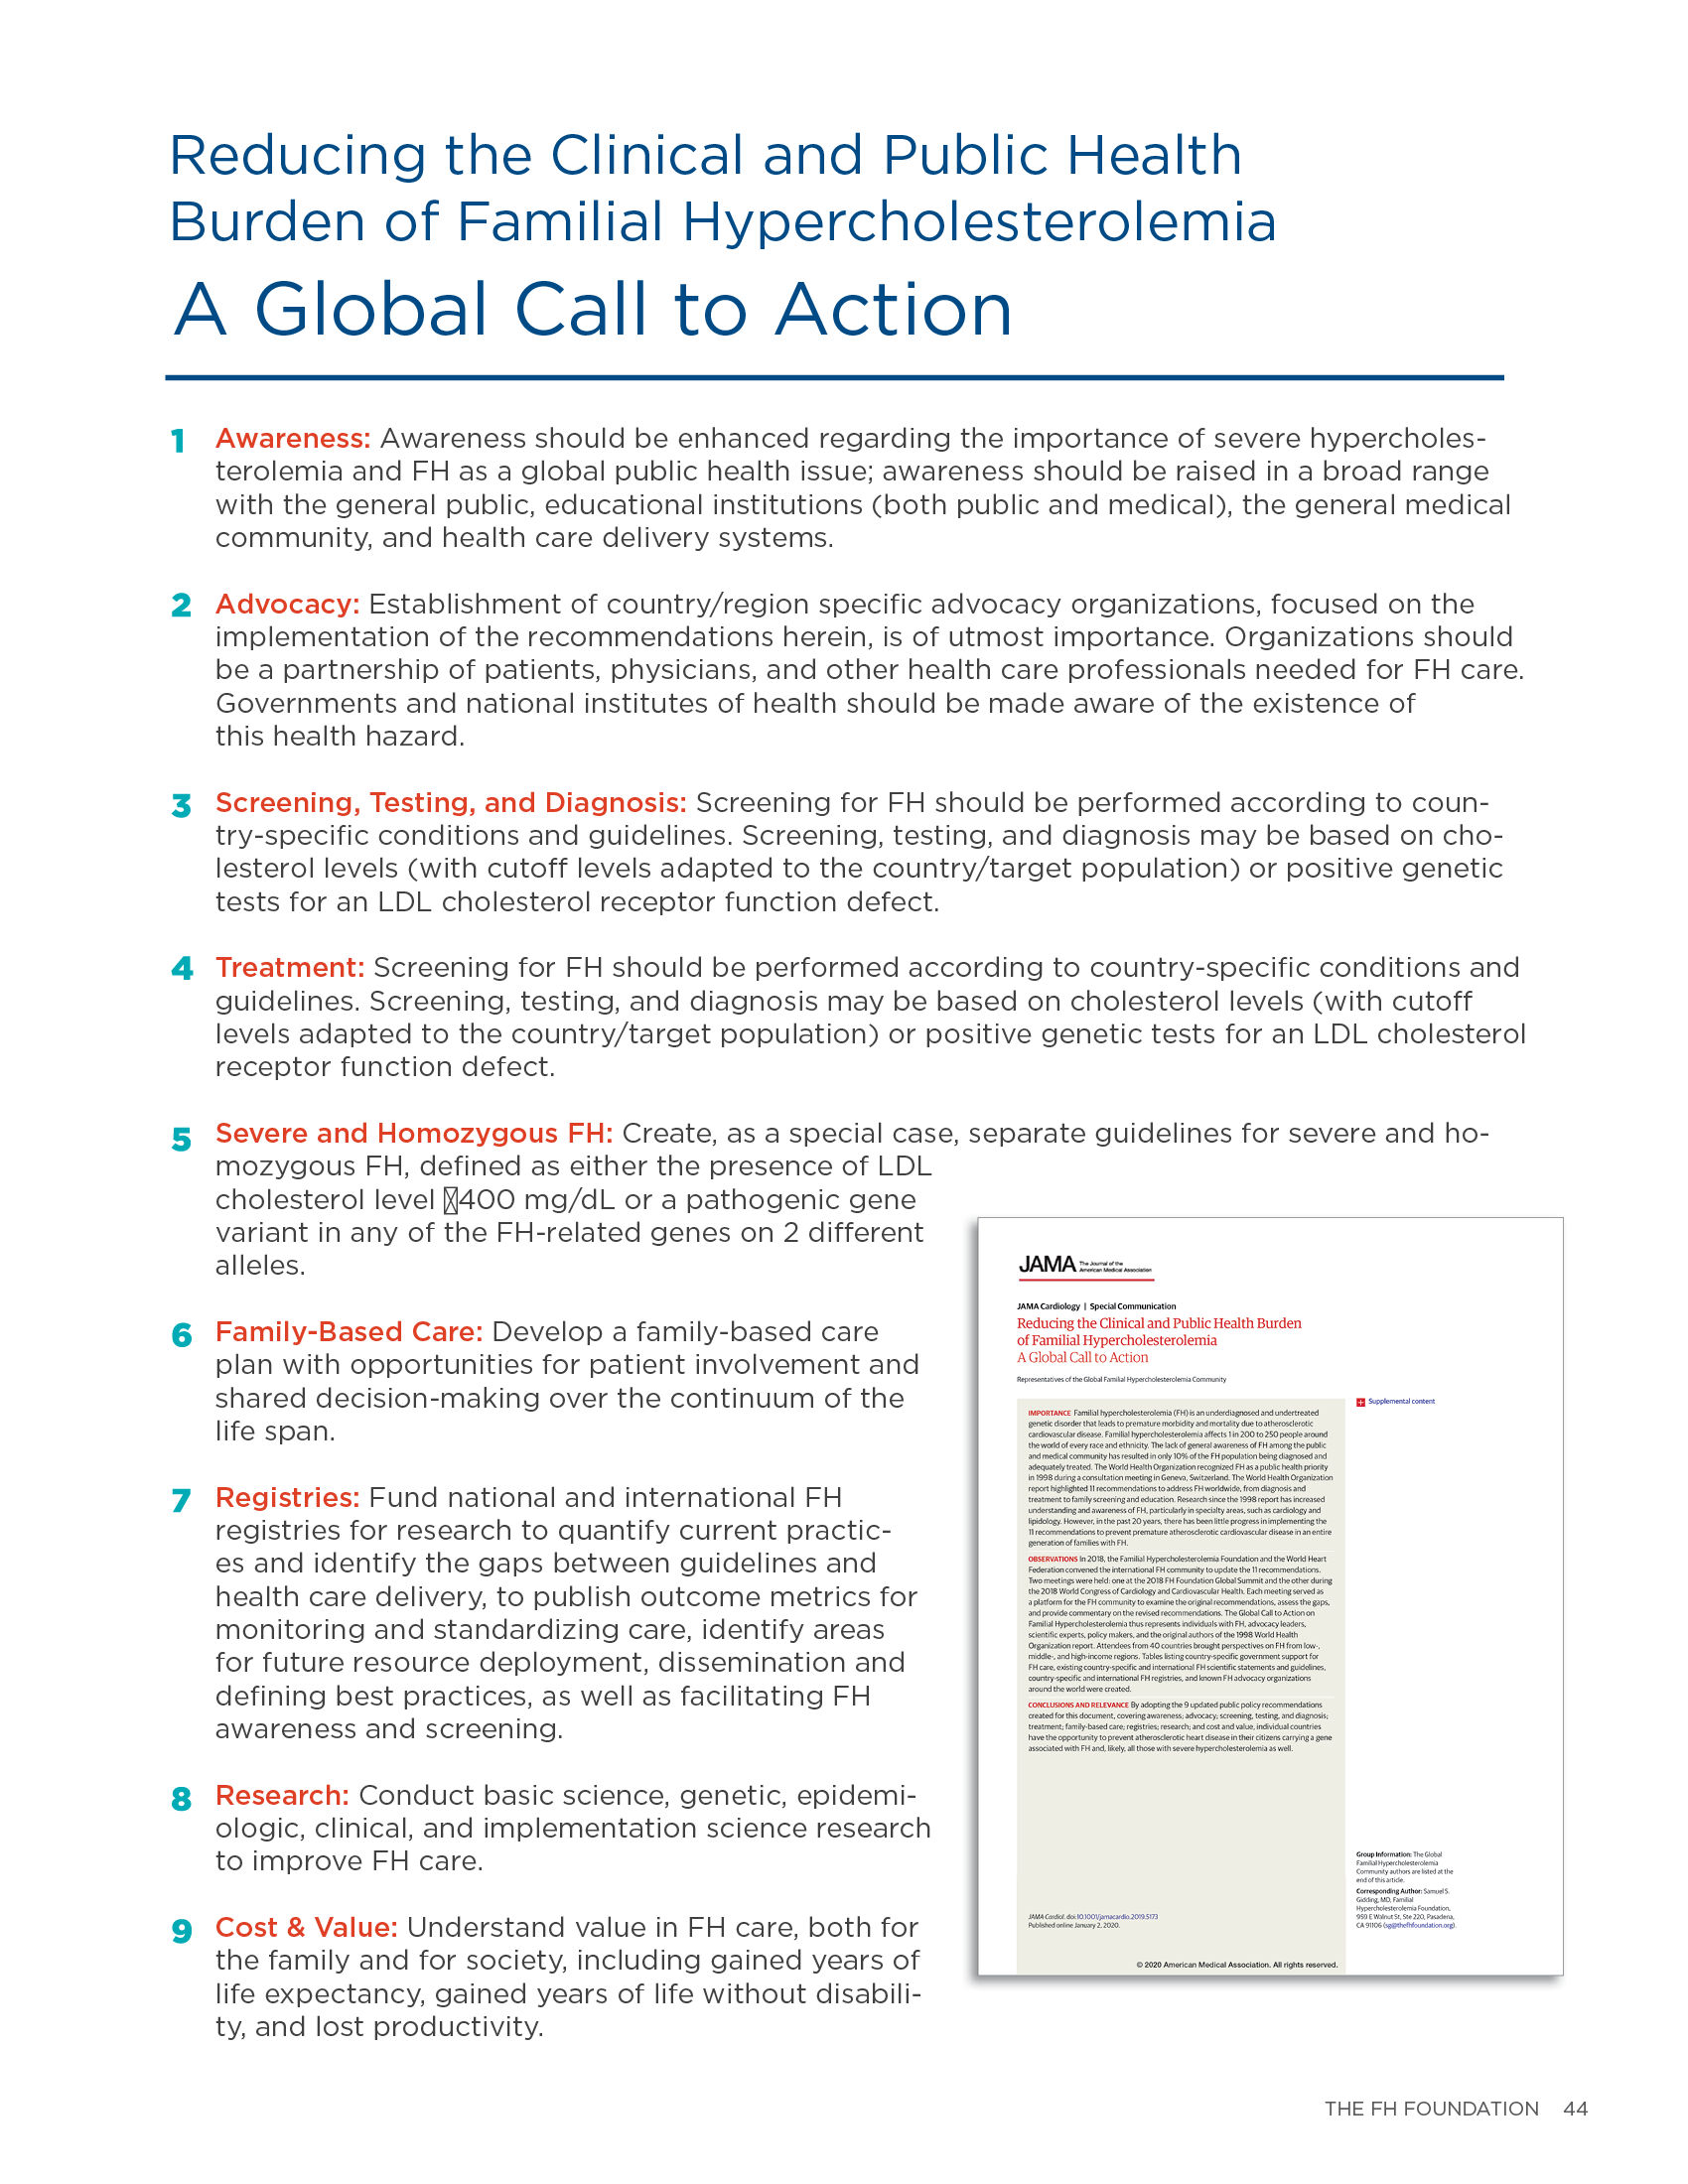 Table of Specific Recommendations from the Global Call to Action on Familial Hypercholesterolemia